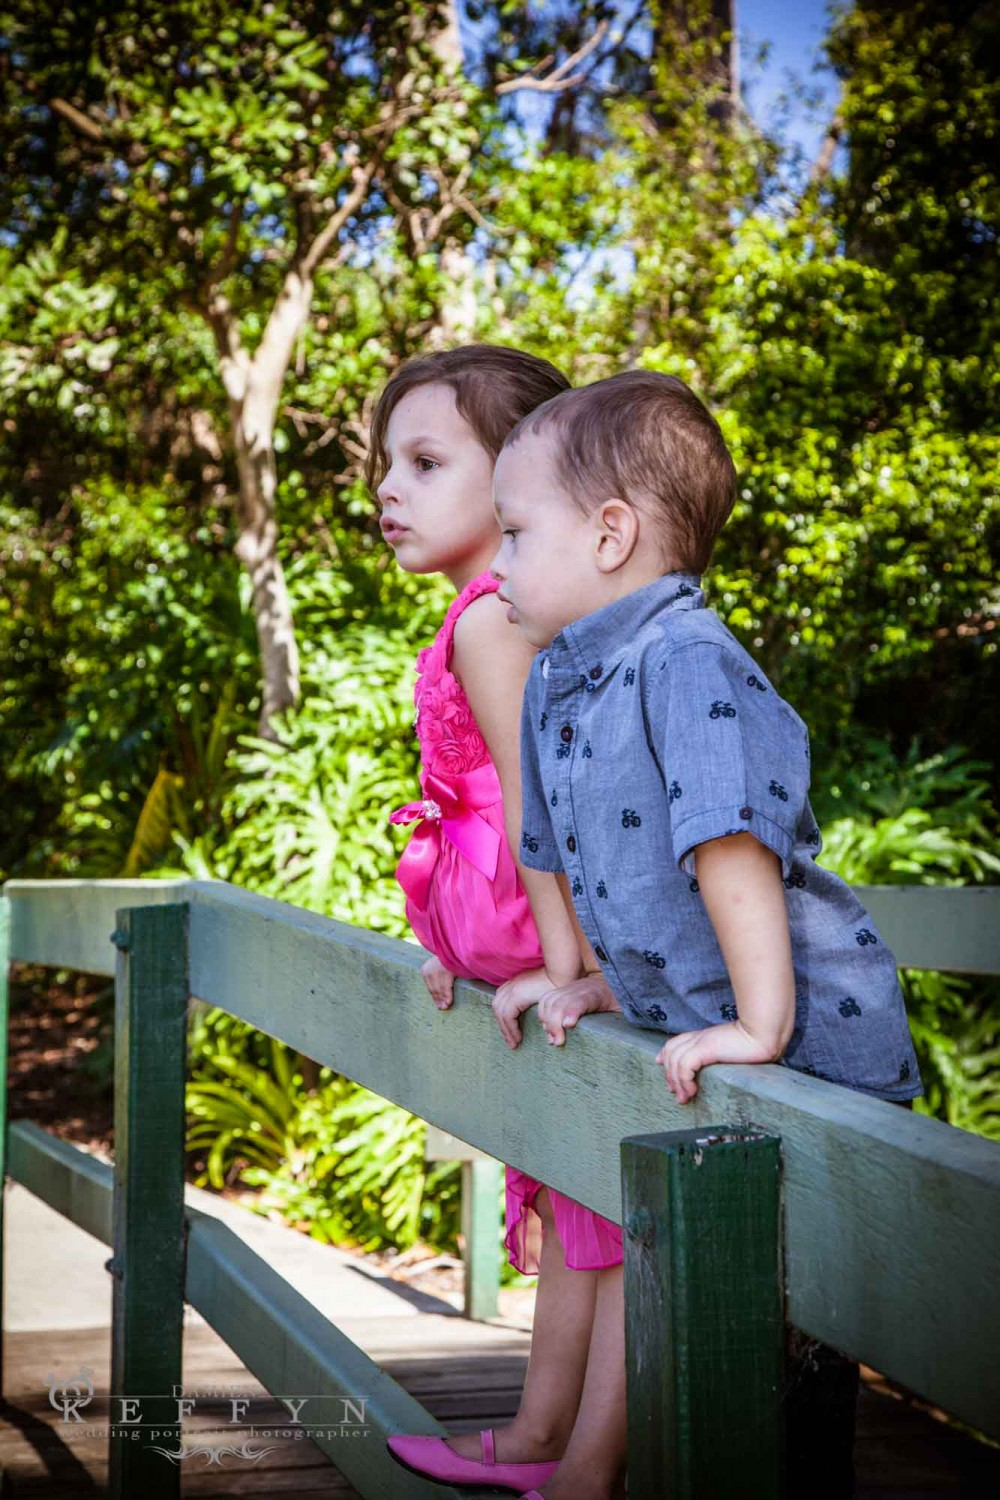 Dominic Savannah Kids Portraits Centenary Lakes, Caboolture ,Centenary Lakes, Children, cute kids, Family Portrait, Kids Portraits, Testimonials